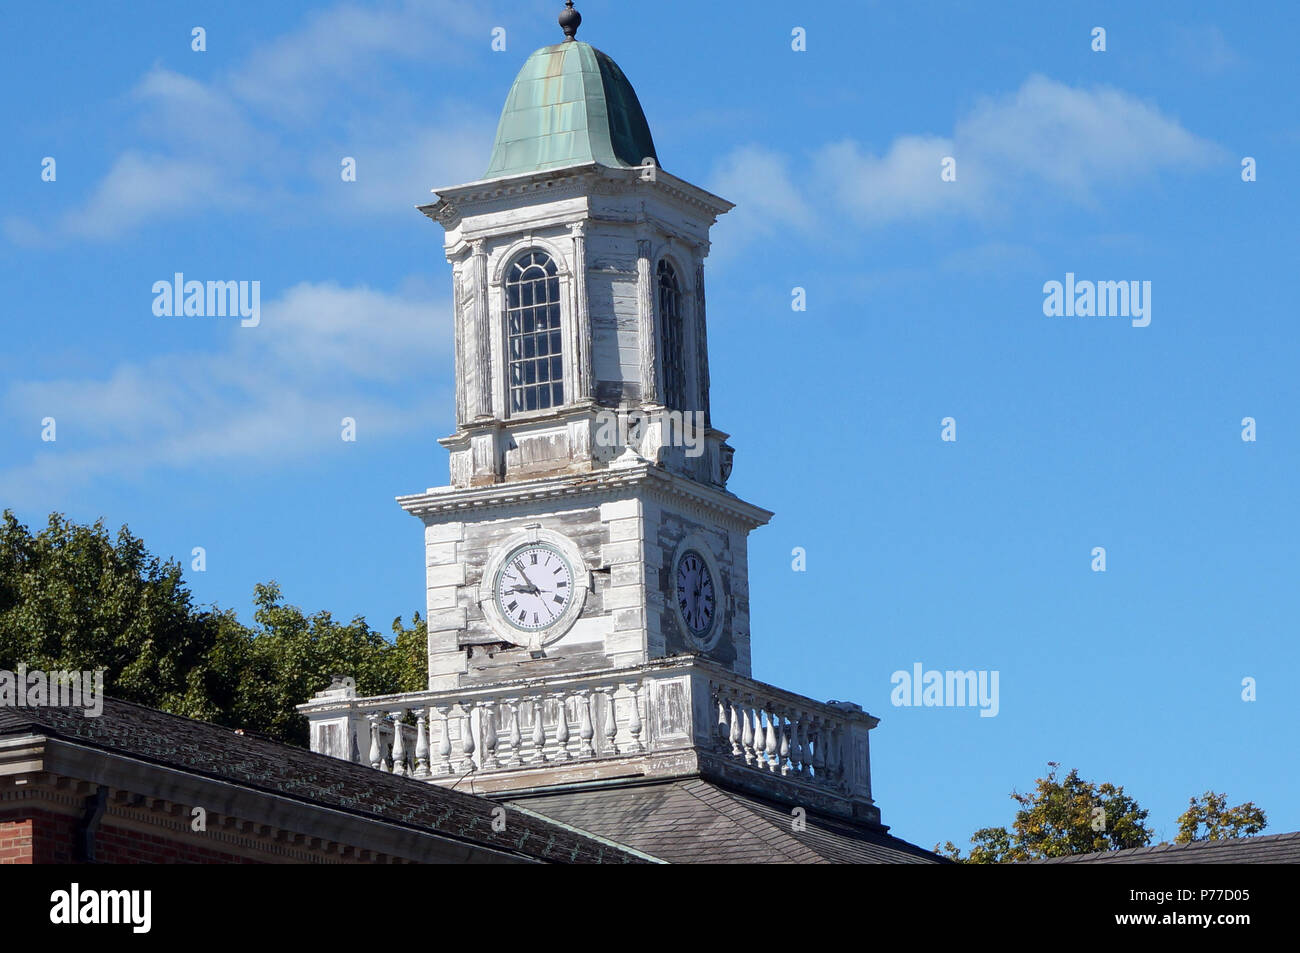 Clock Tower On an Abandoned Hospital Building Stock Photo